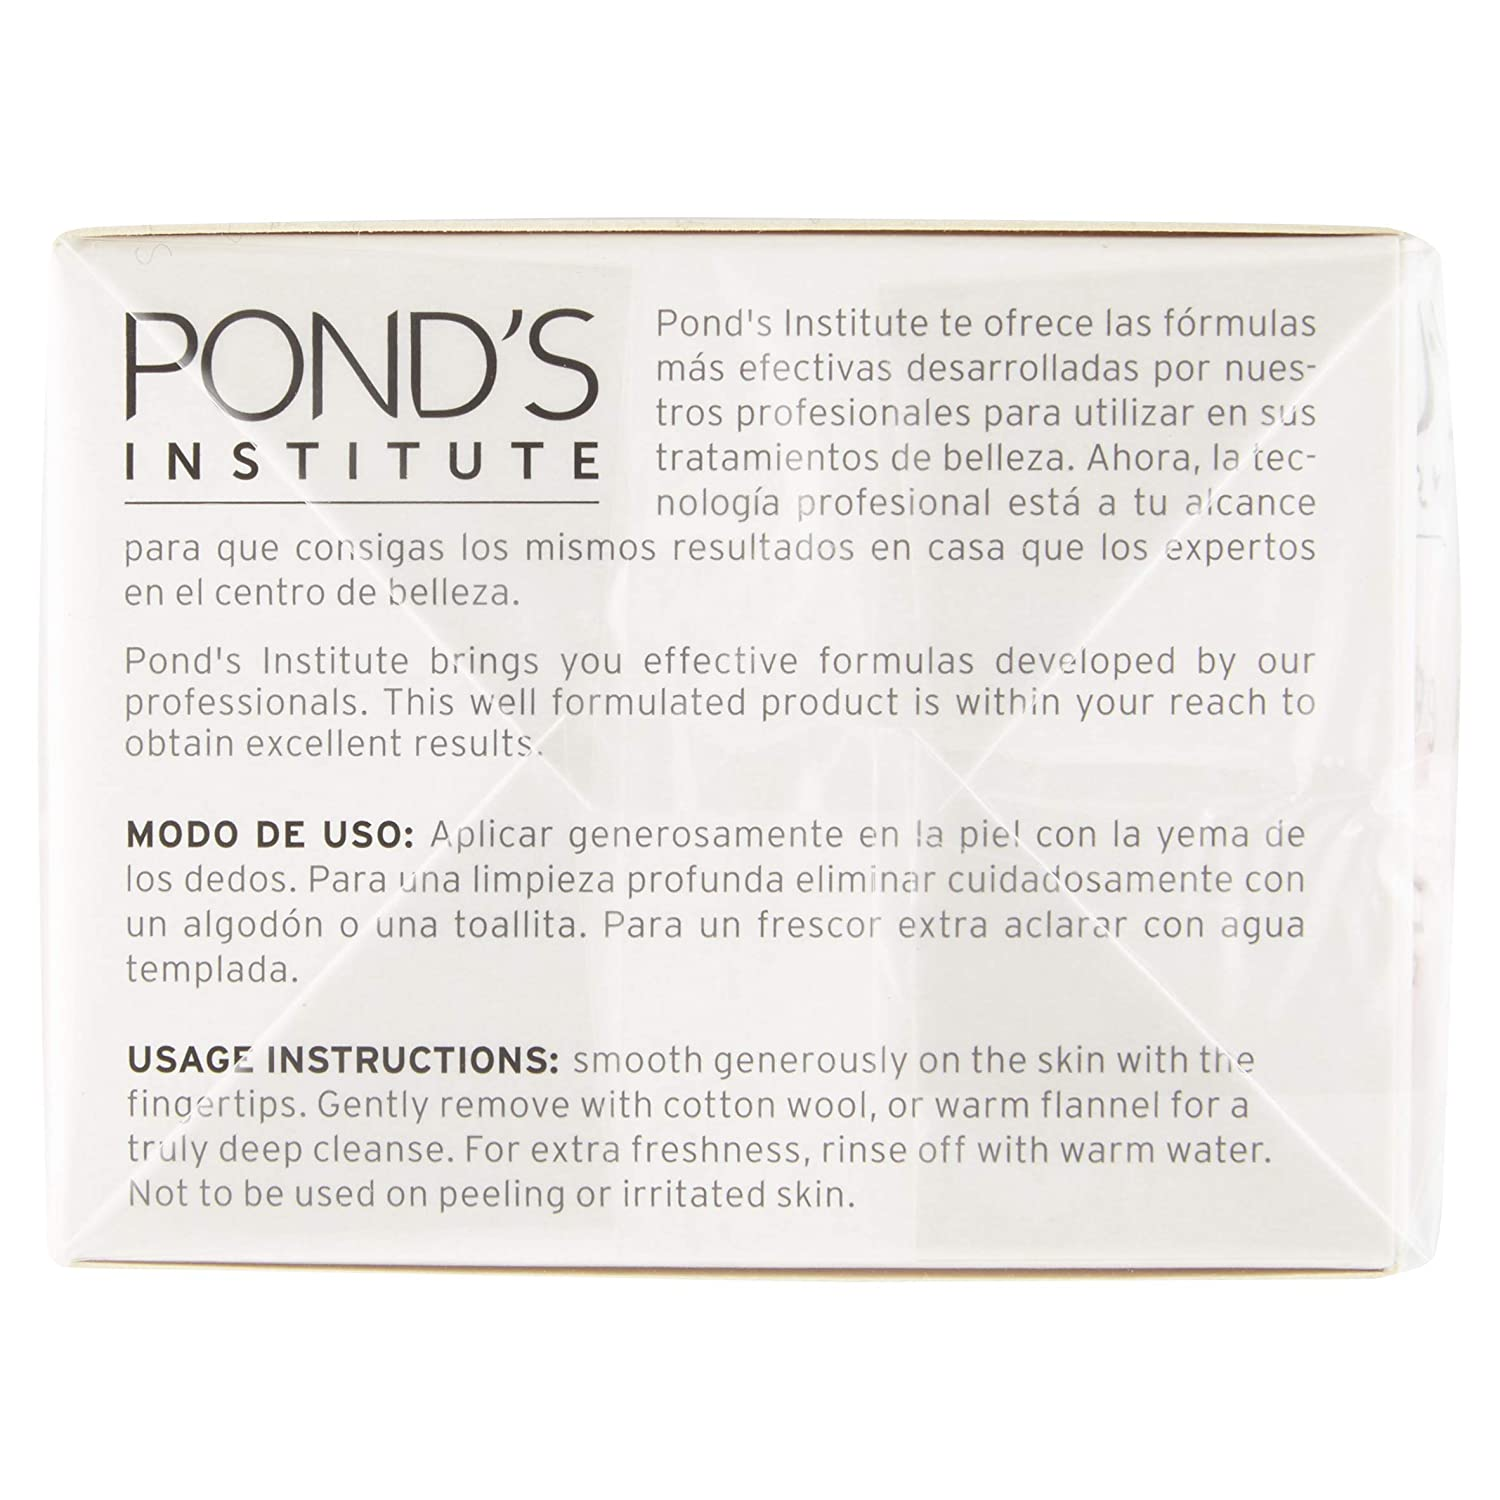 Ponds Cold Cream, crema, 50 ml, paquete de 6.: Amazon.es: Belleza